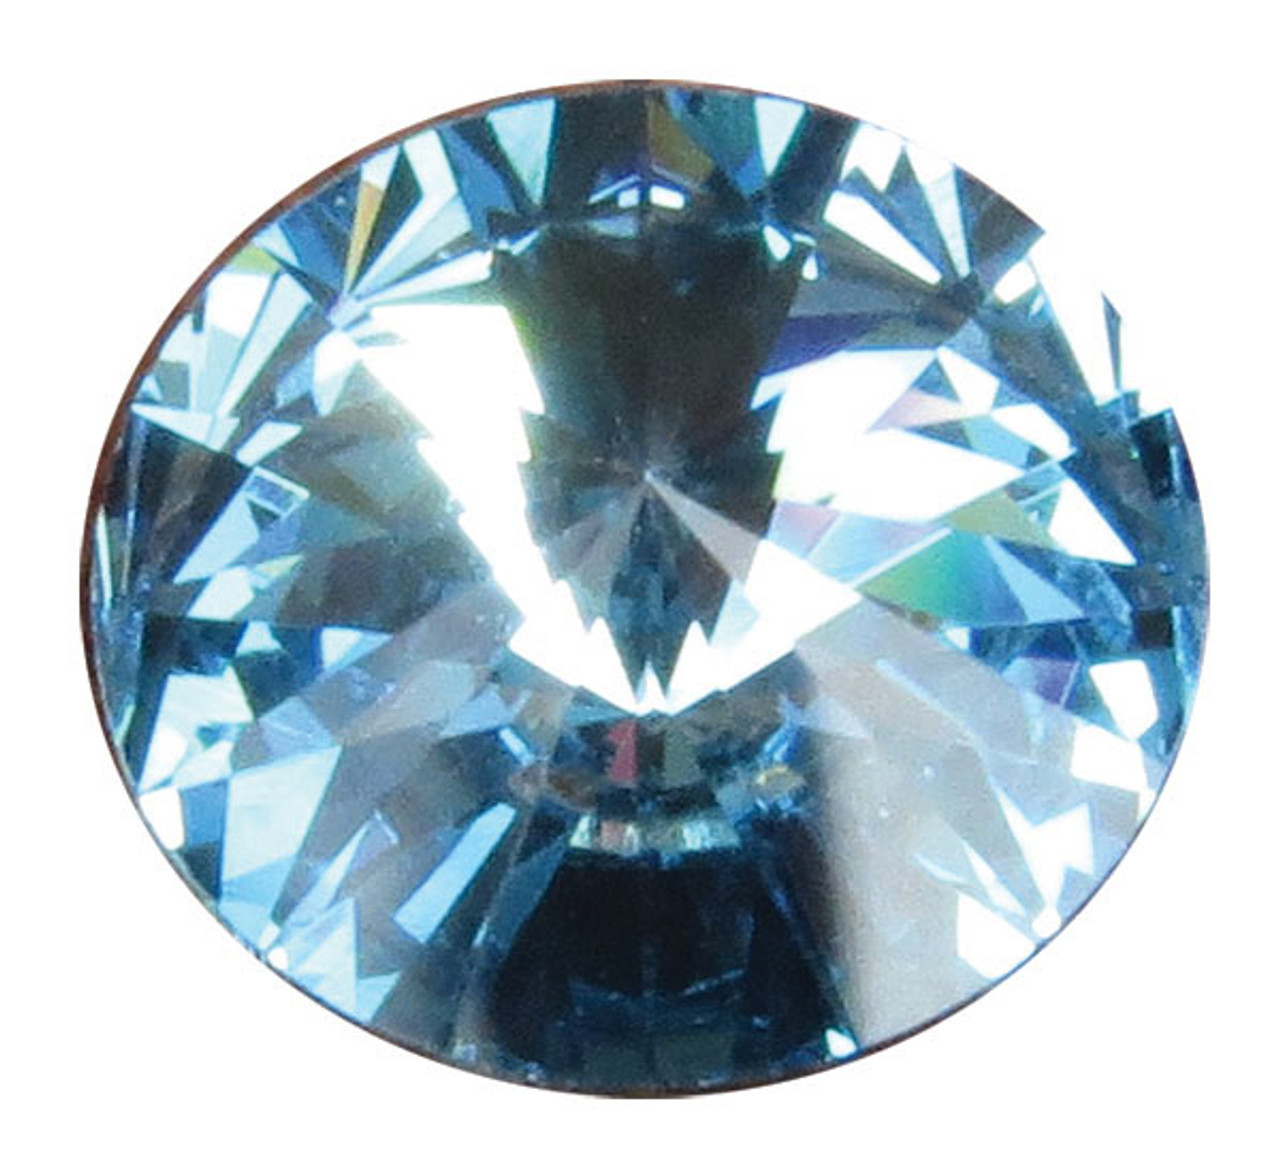 SCMAR - Swarovski Crystal Gemstones Aquamarine (March) 6 stones/pack. For ClayPaws® Prints (SCMAR)